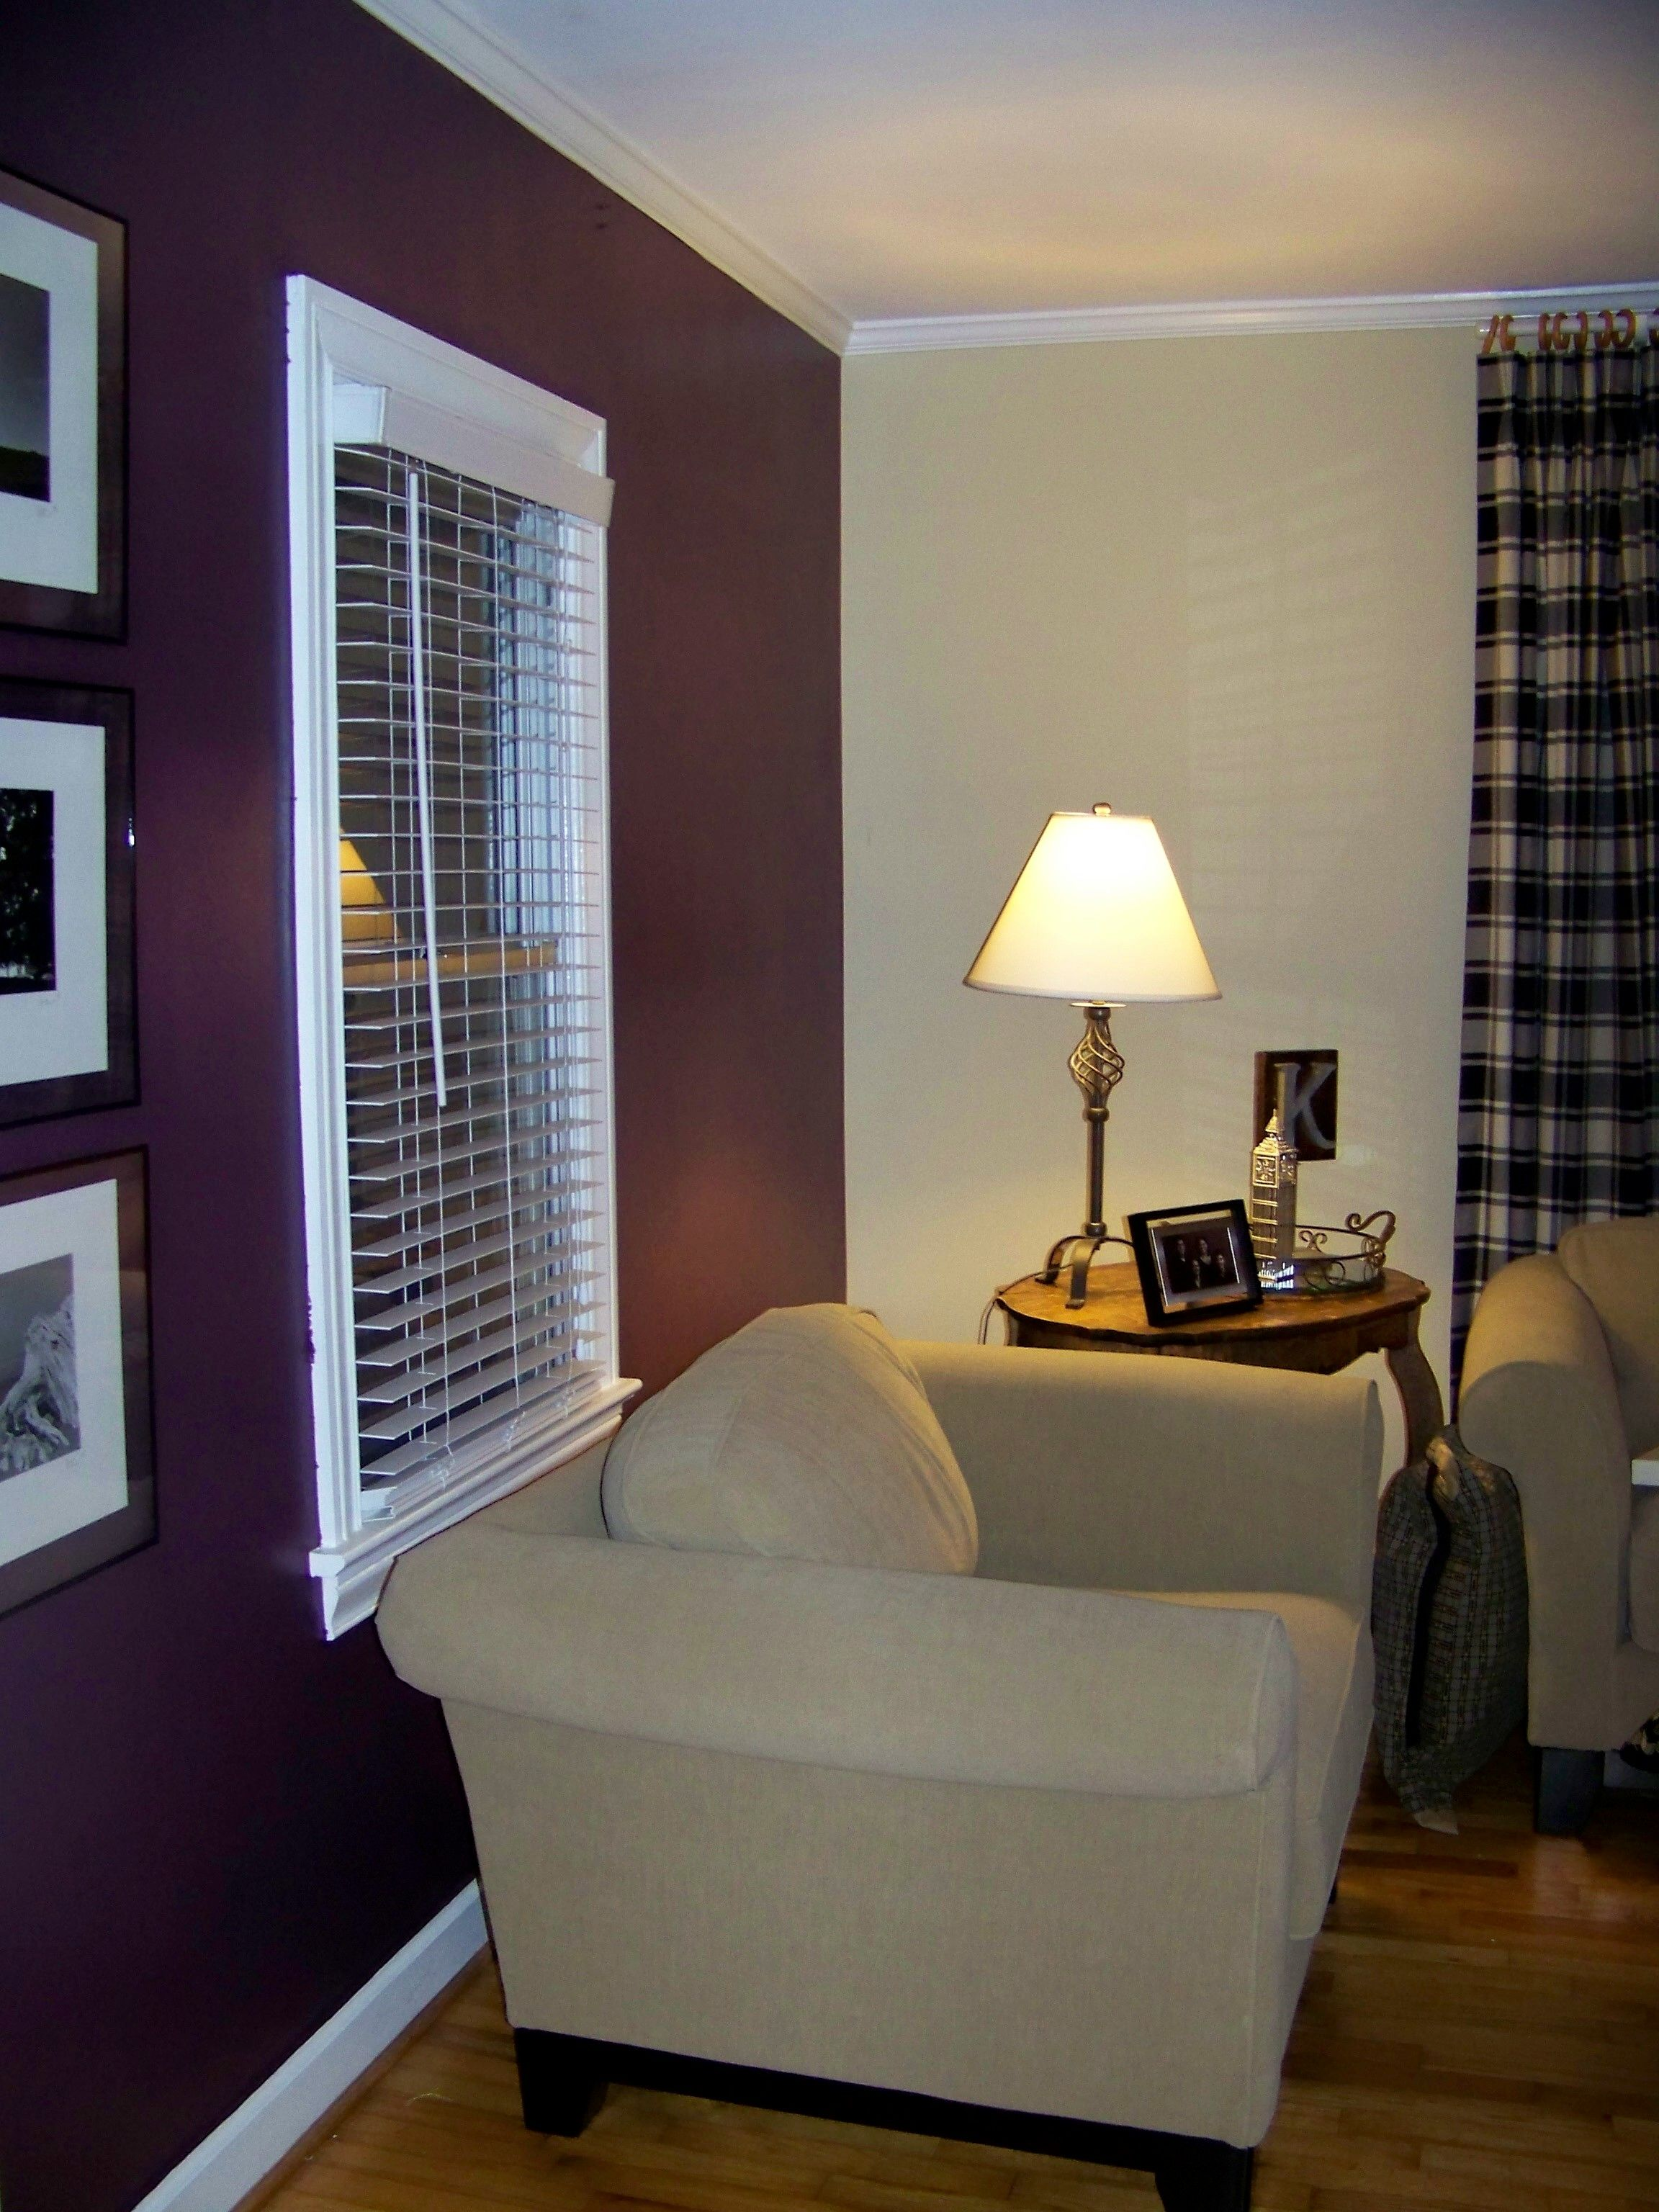 Paint Design For Living Room Walls: See More Ideas About Purple Living Room Paint, Purple